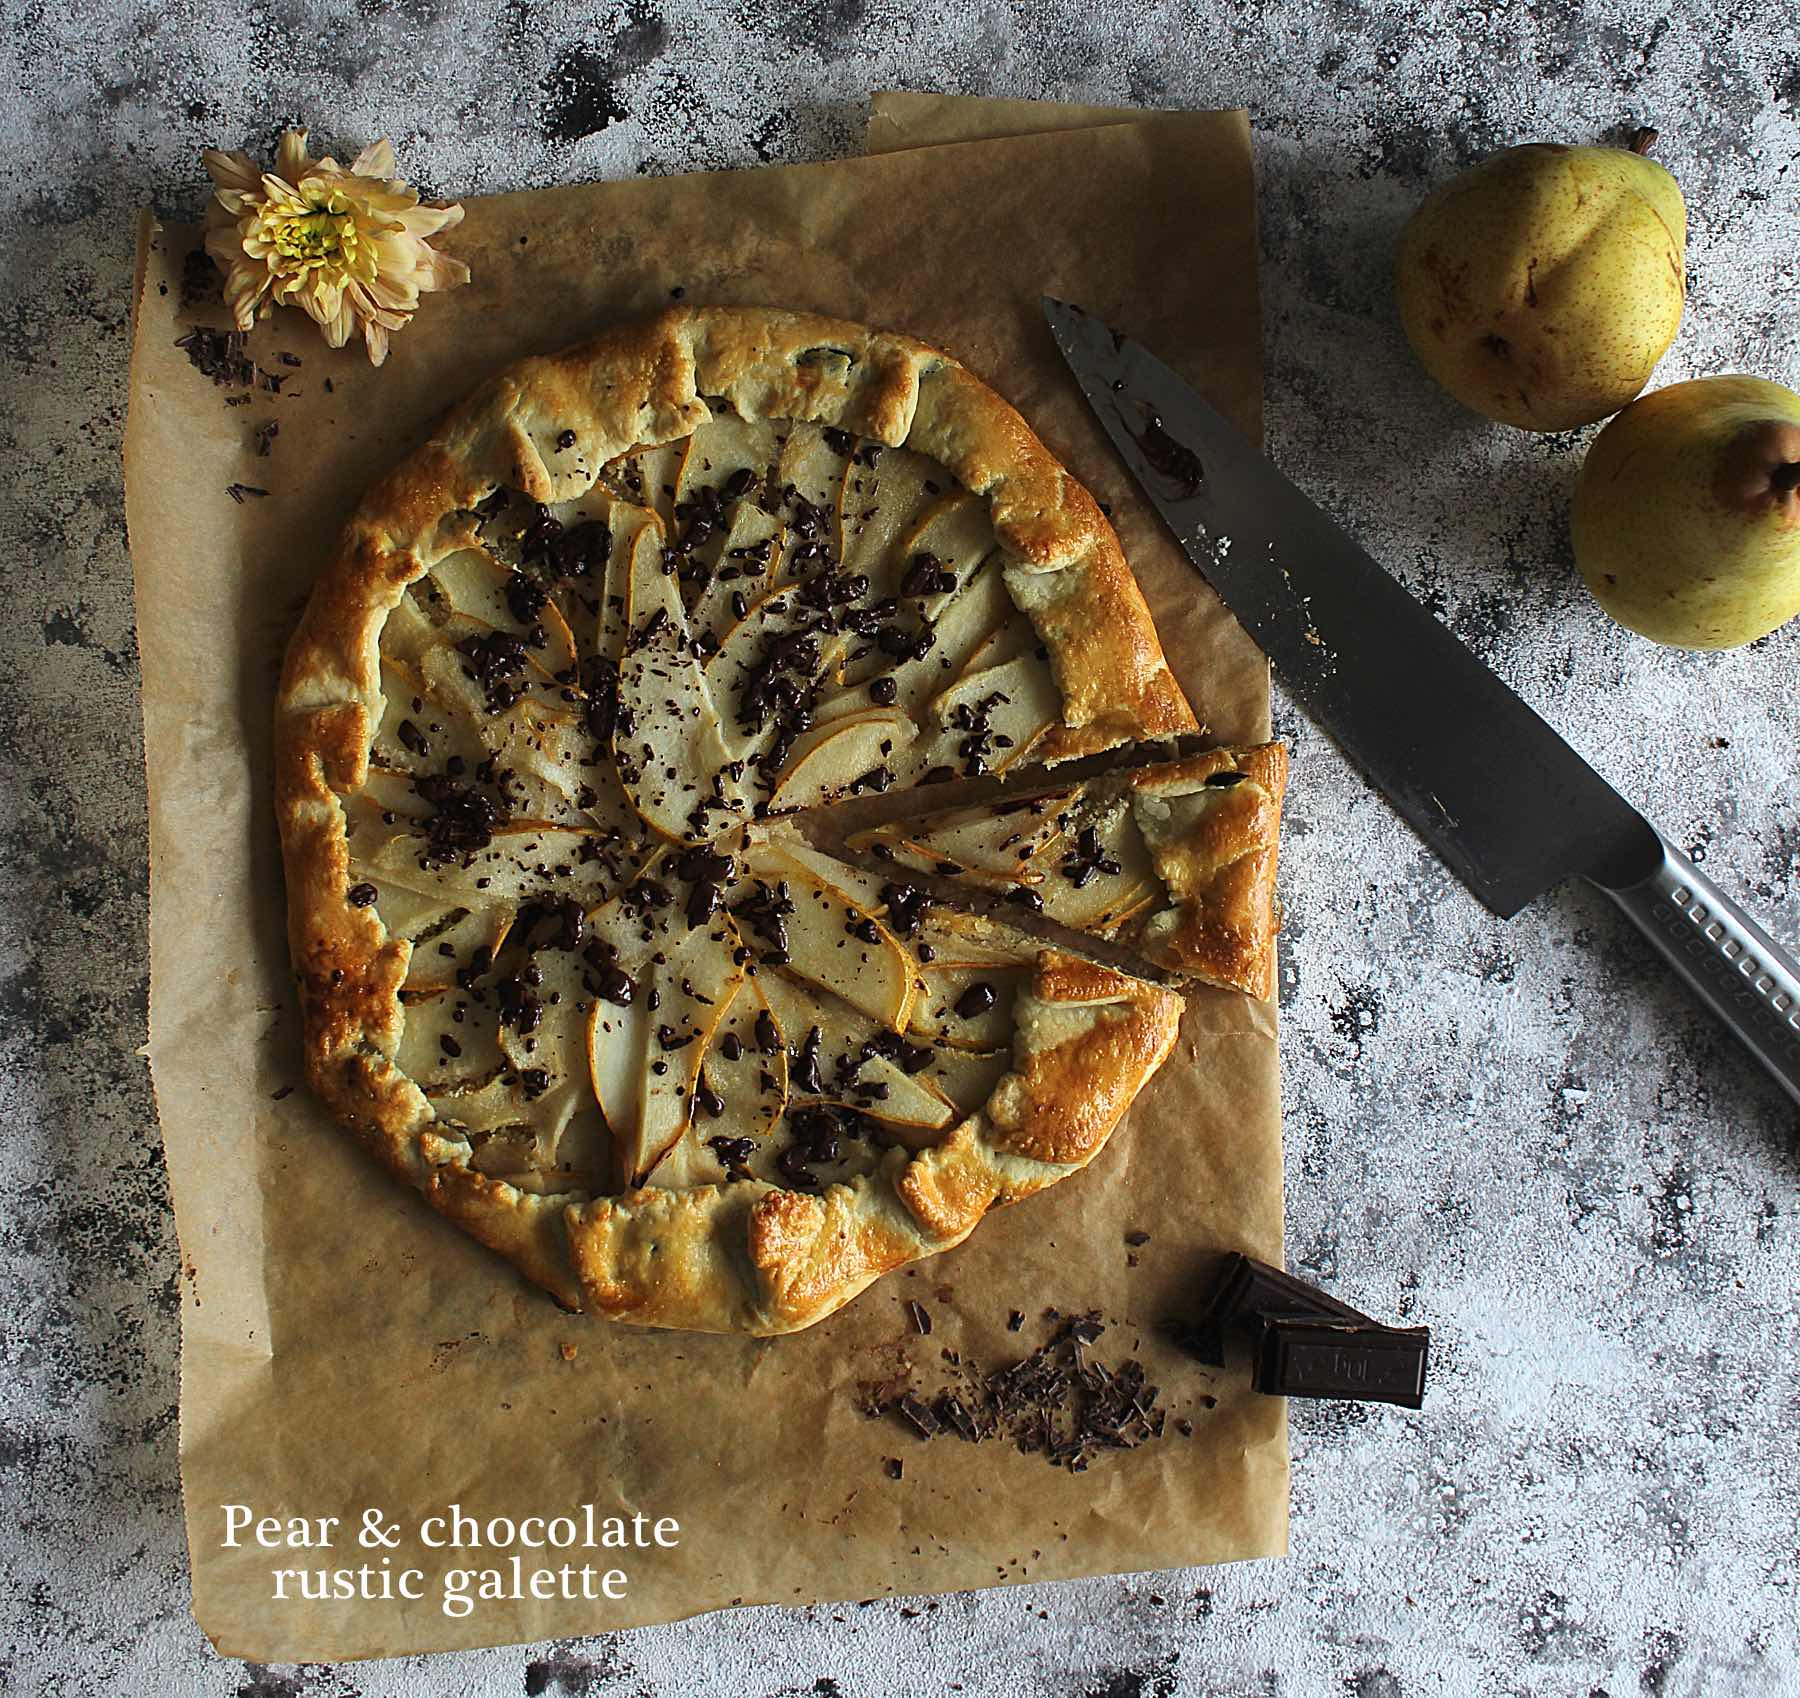 Pear & chocolate rustic galette